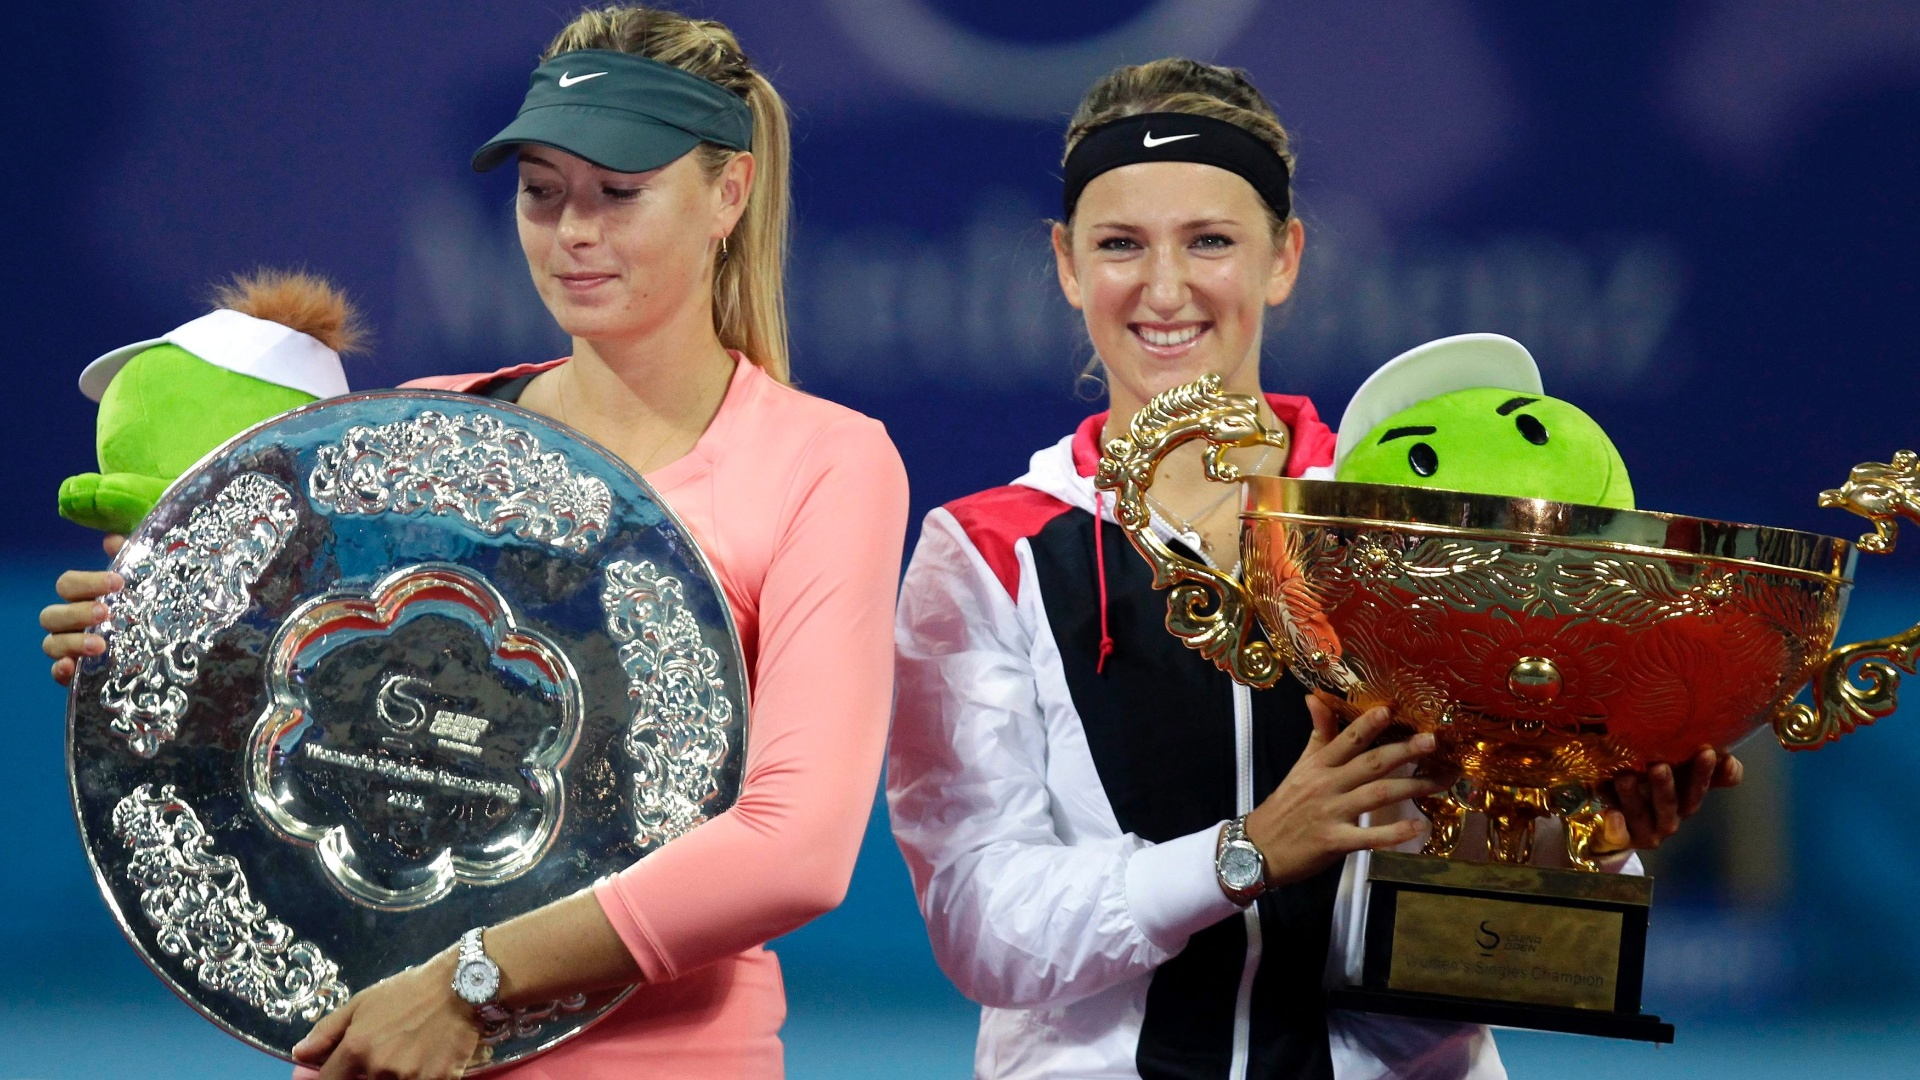 Nmero 1 do mundo, Victoria Azarenka (direita) bateu a russa Maria Sharapova, vice-lder, na final do WTA de Pequim